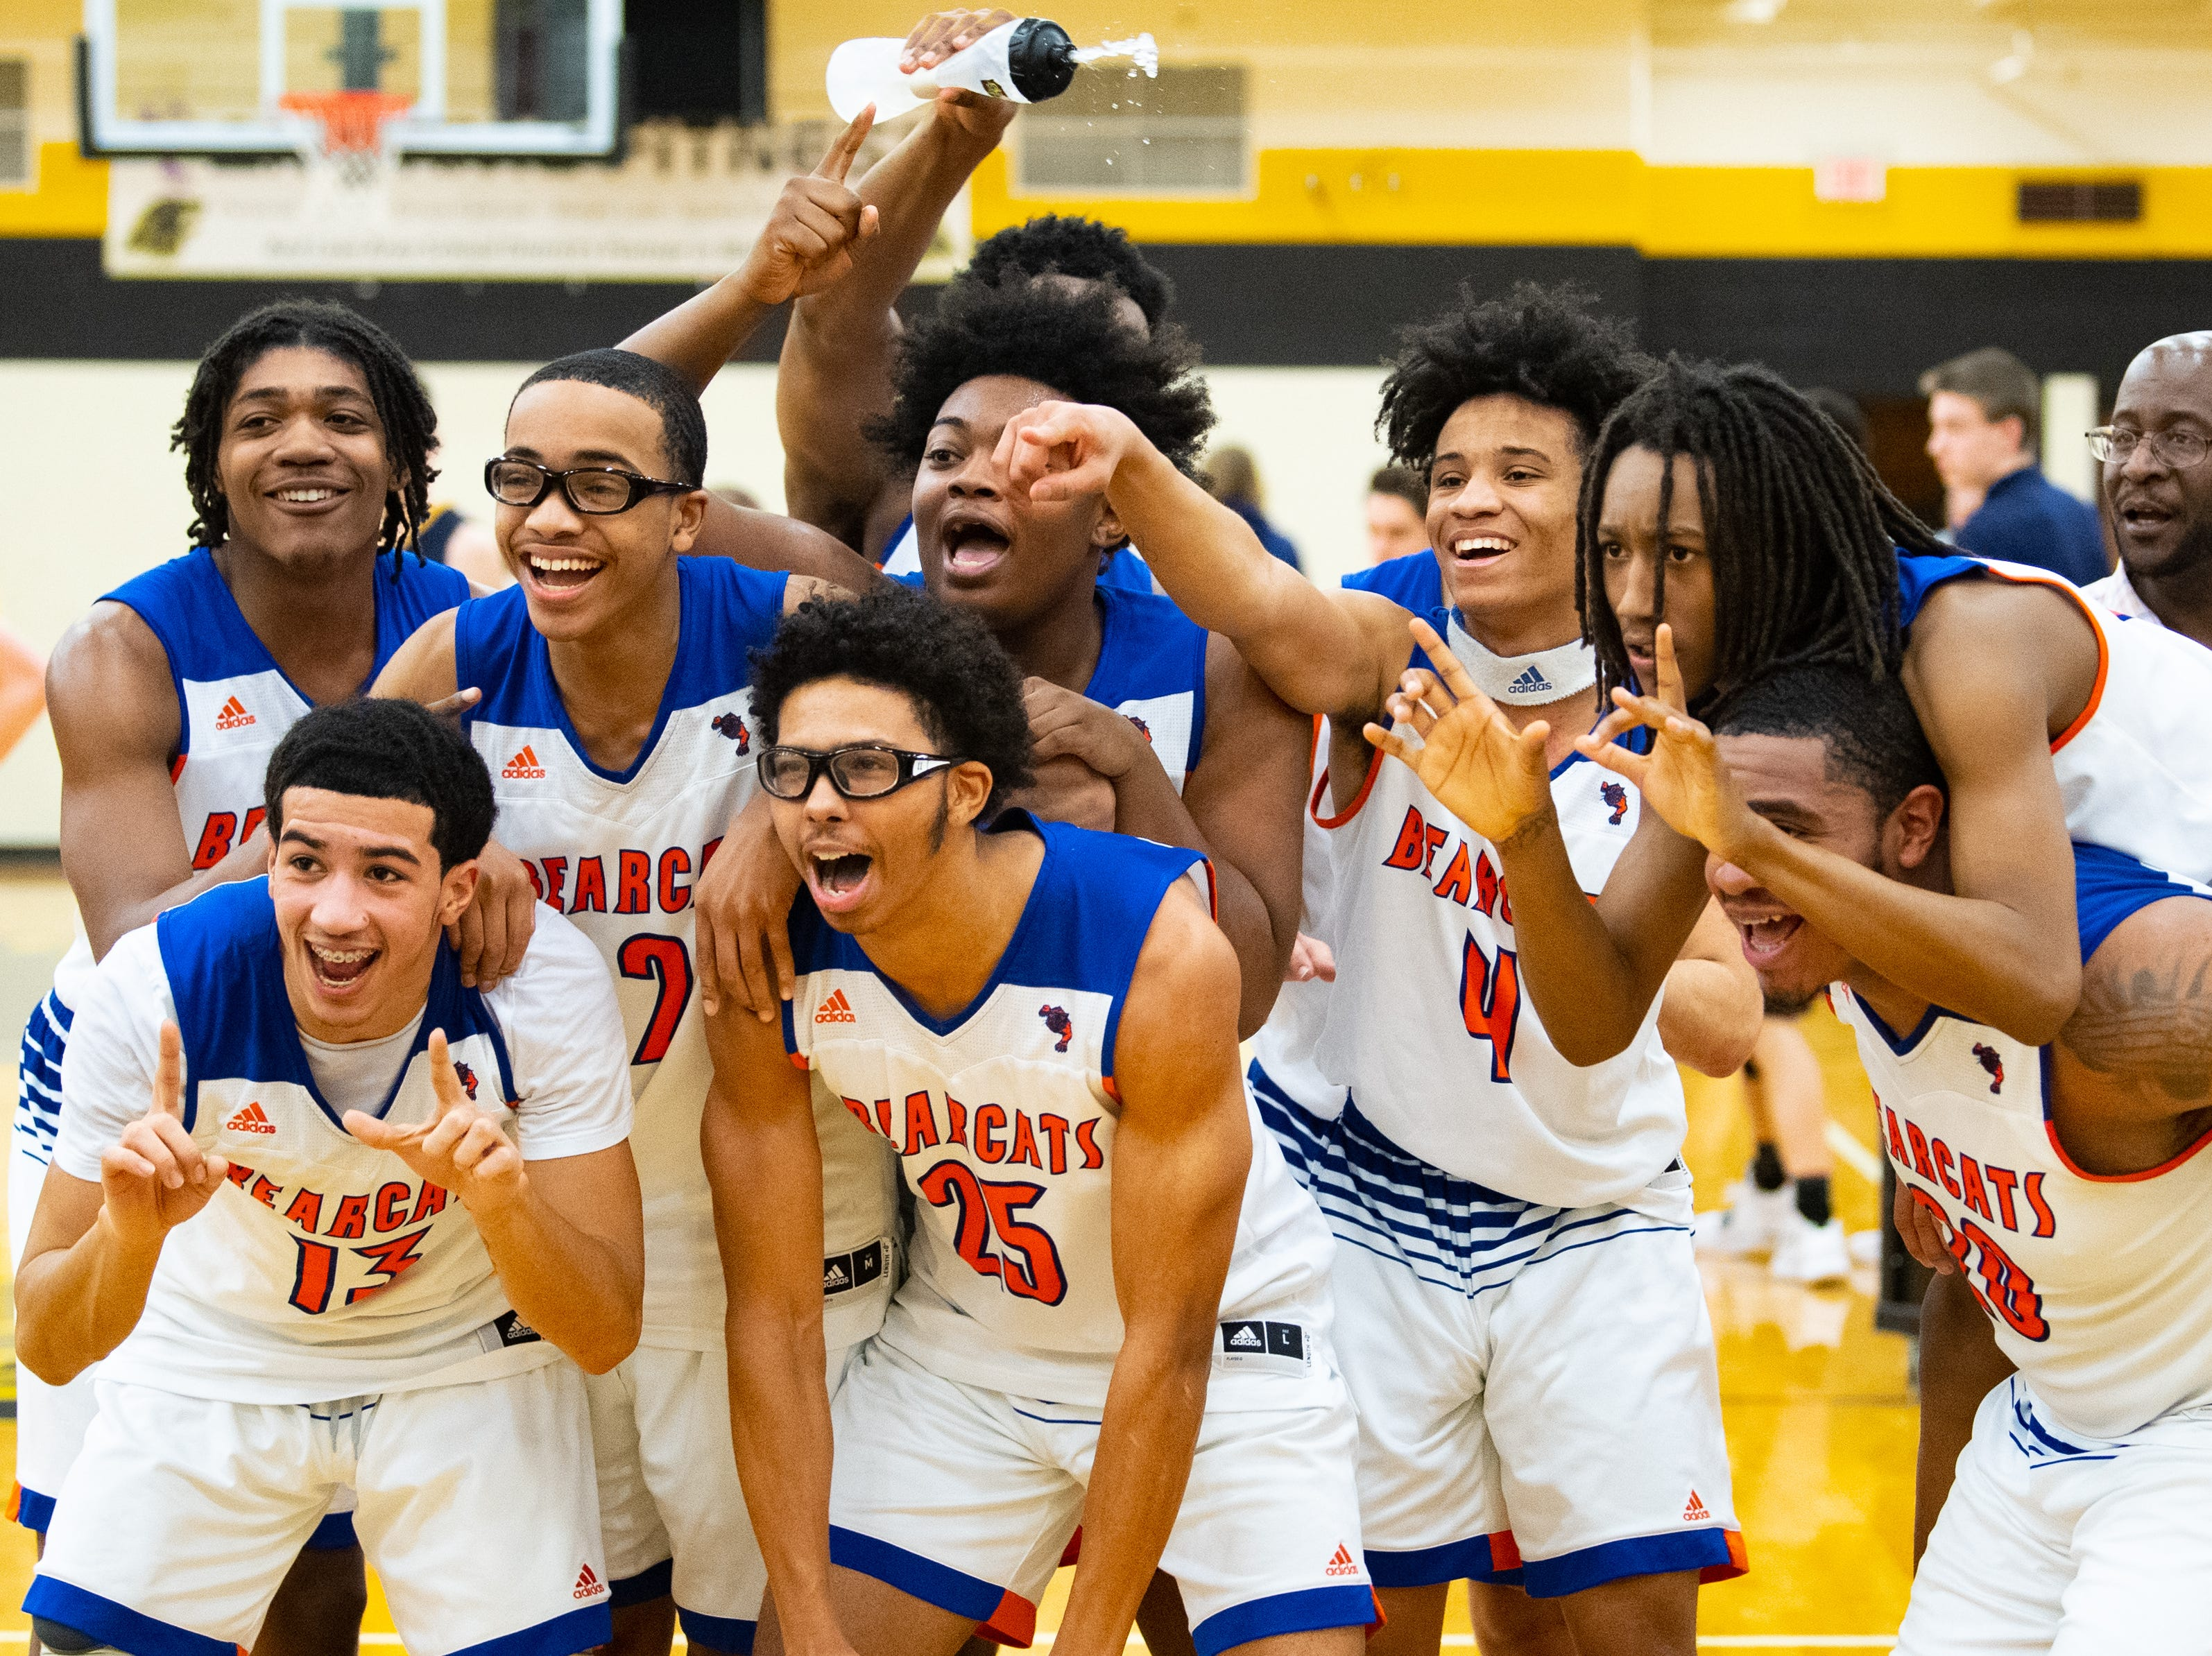 York High celebrates after defeating Littlestown in the YAIAA boys' basketball semifinals, Wednesday, February 13, 2019 at Red Lion Area High School. The Bearcats defeated the Thunderbolts 74 to 51.